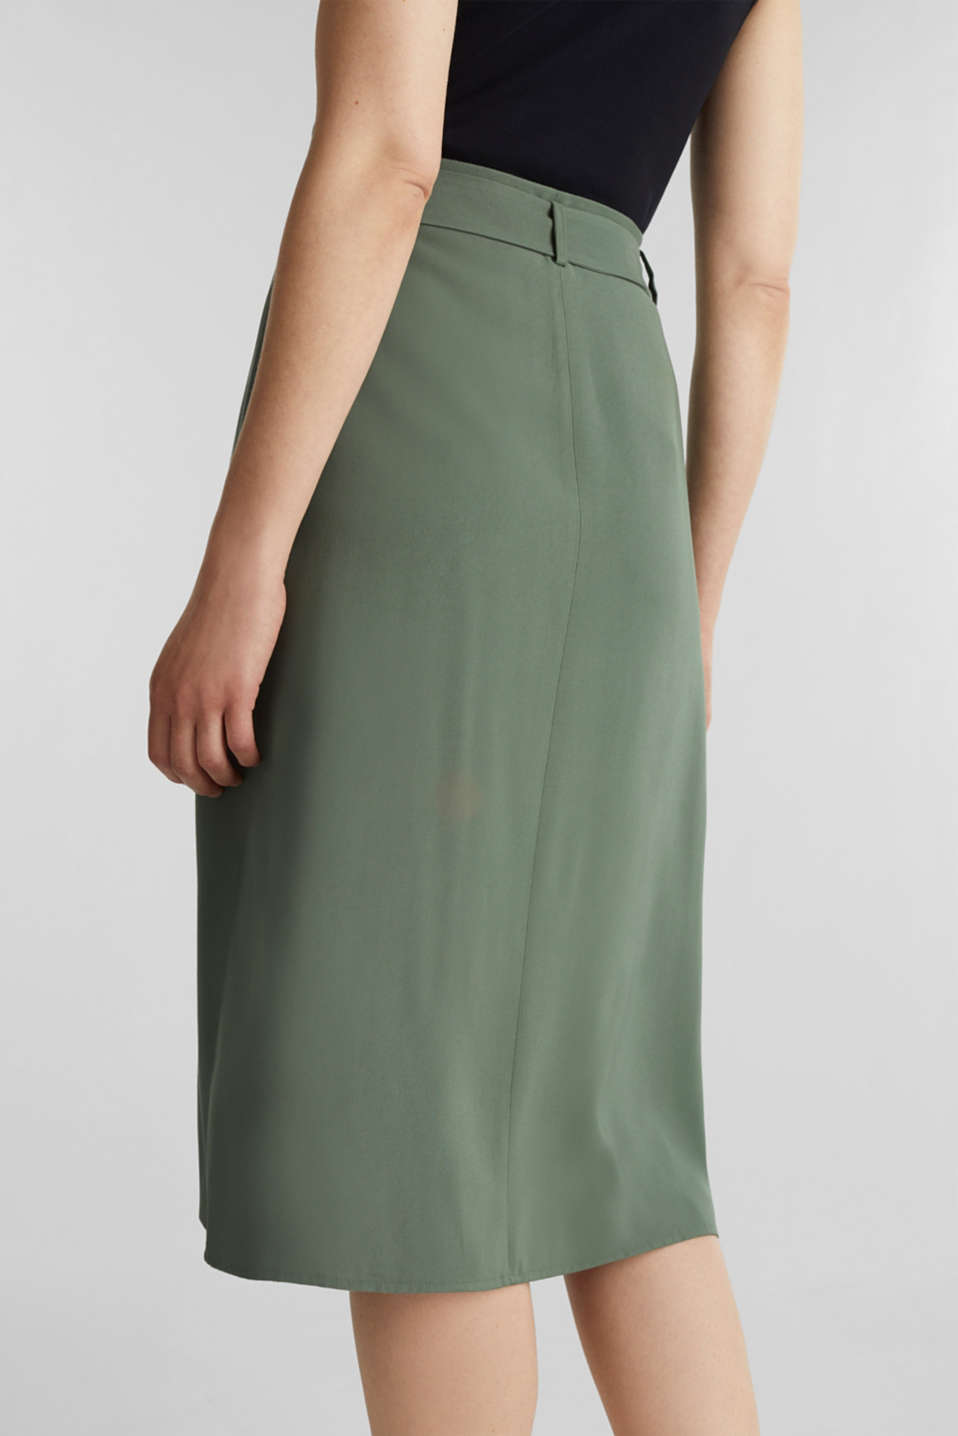 Midi skirt with a belt and a button placket, KHAKI GREEN, detail image number 5